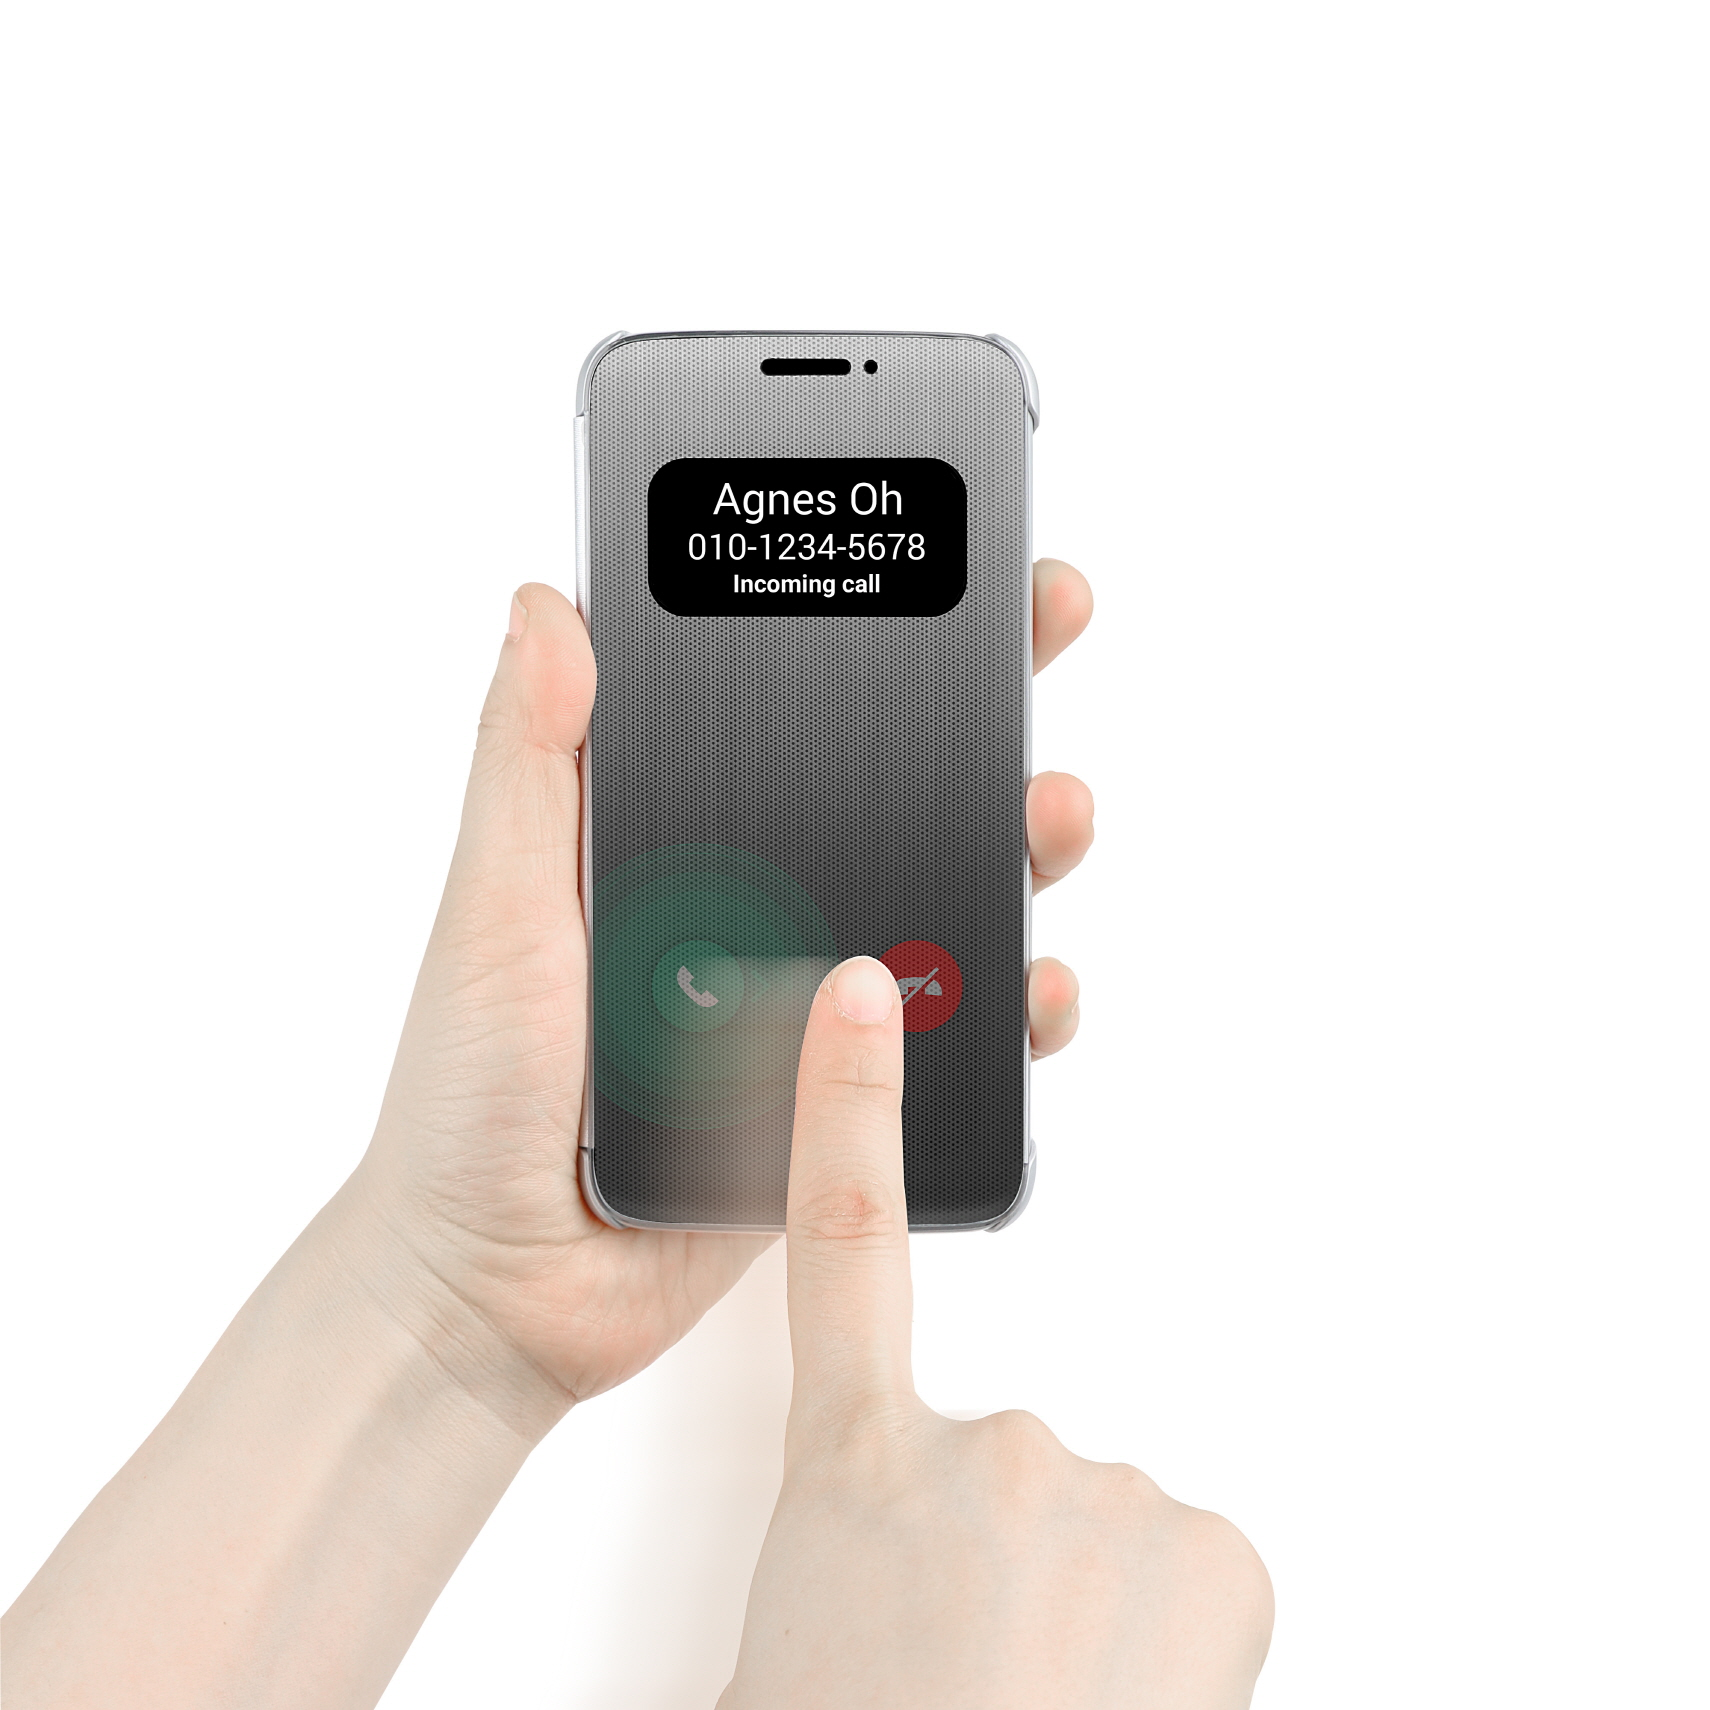 The LG G5 Quick Cover is touch sensitive - you can control the phone without opening the front flap.